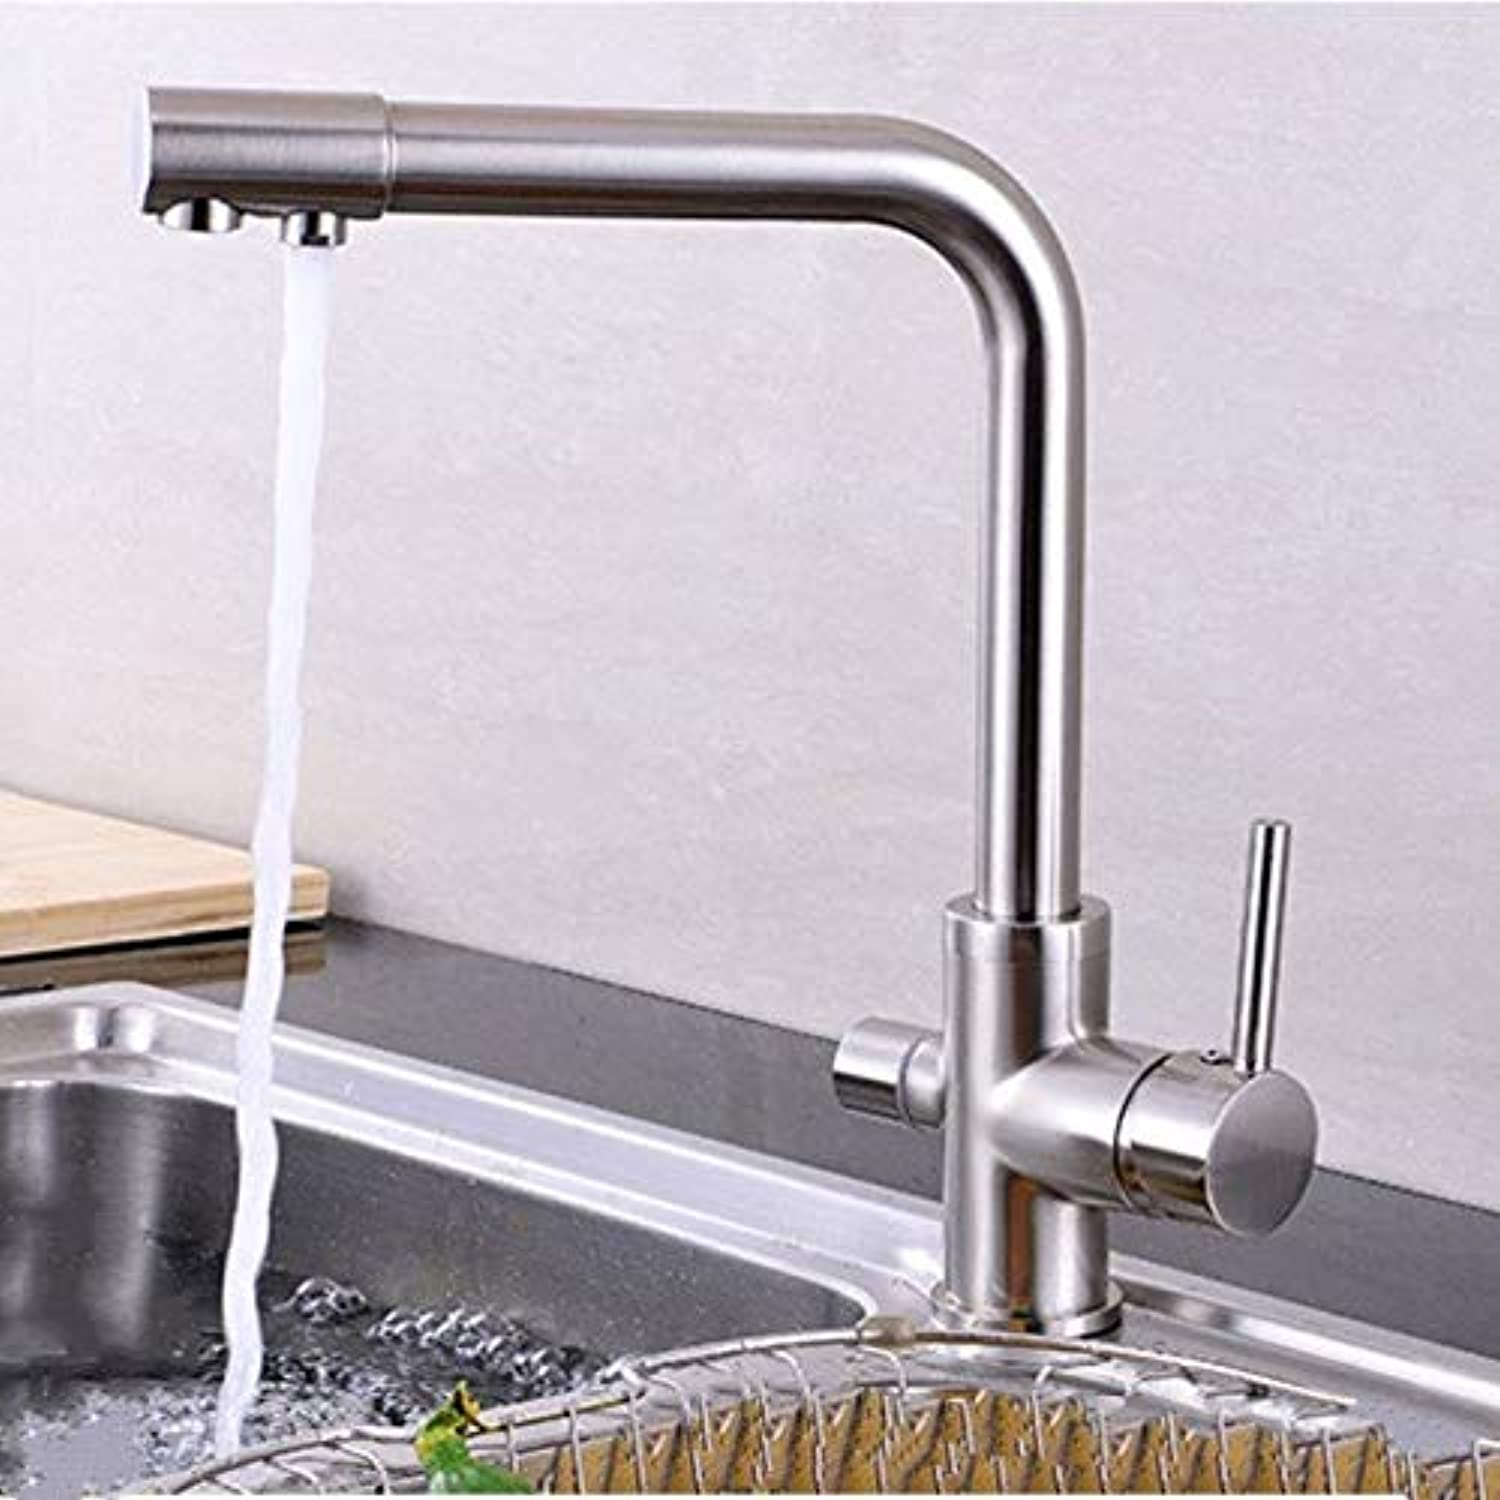 redOOY Taps Antique Silver Faucet Kitchen Sink Pure Water Faucet